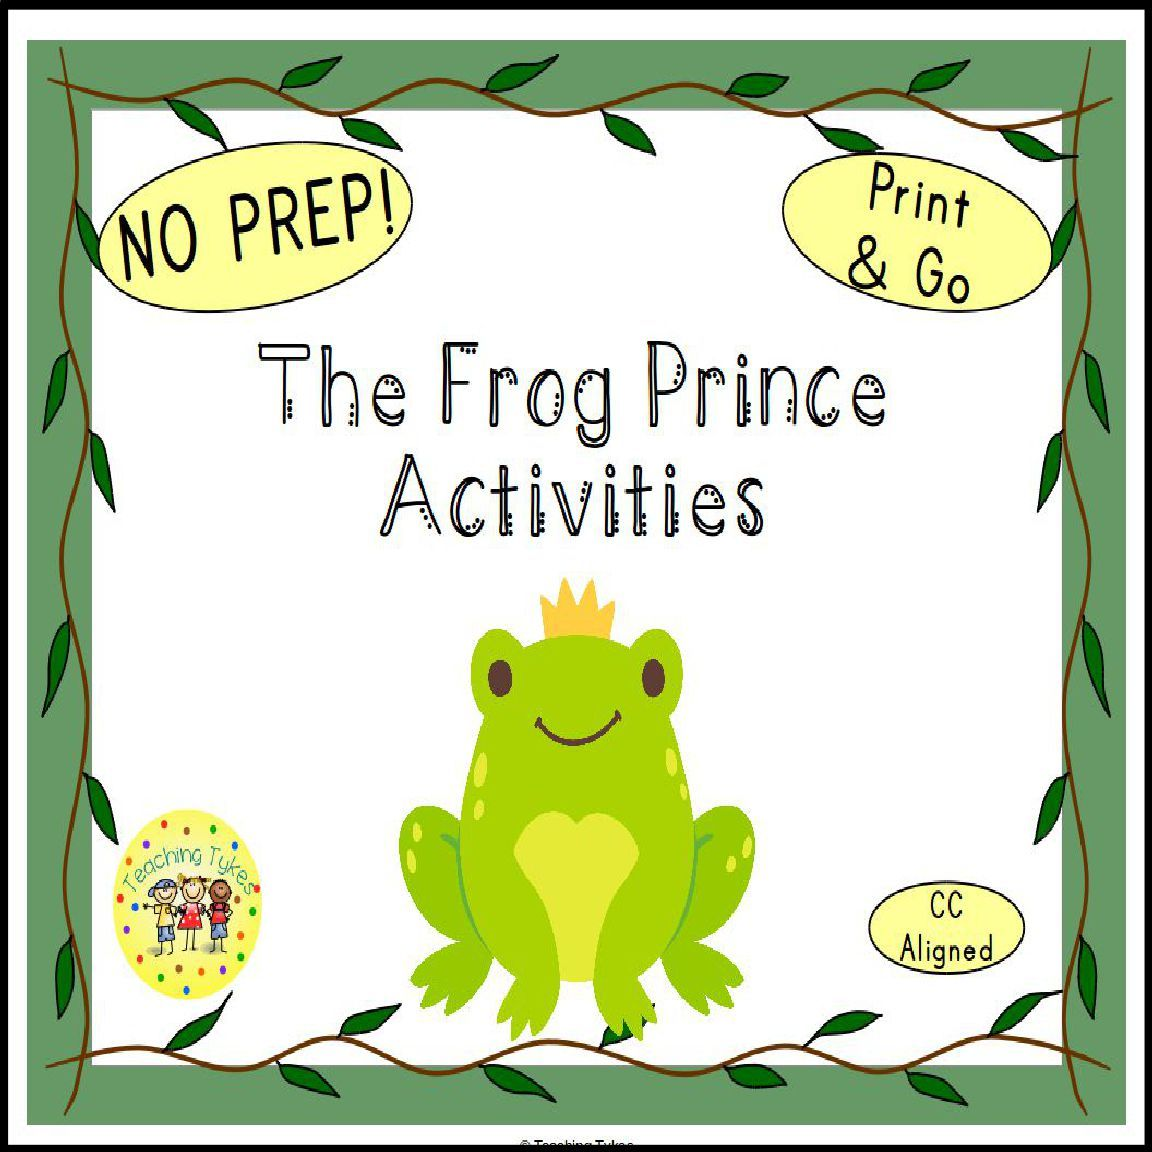 The Frog Prince Activities